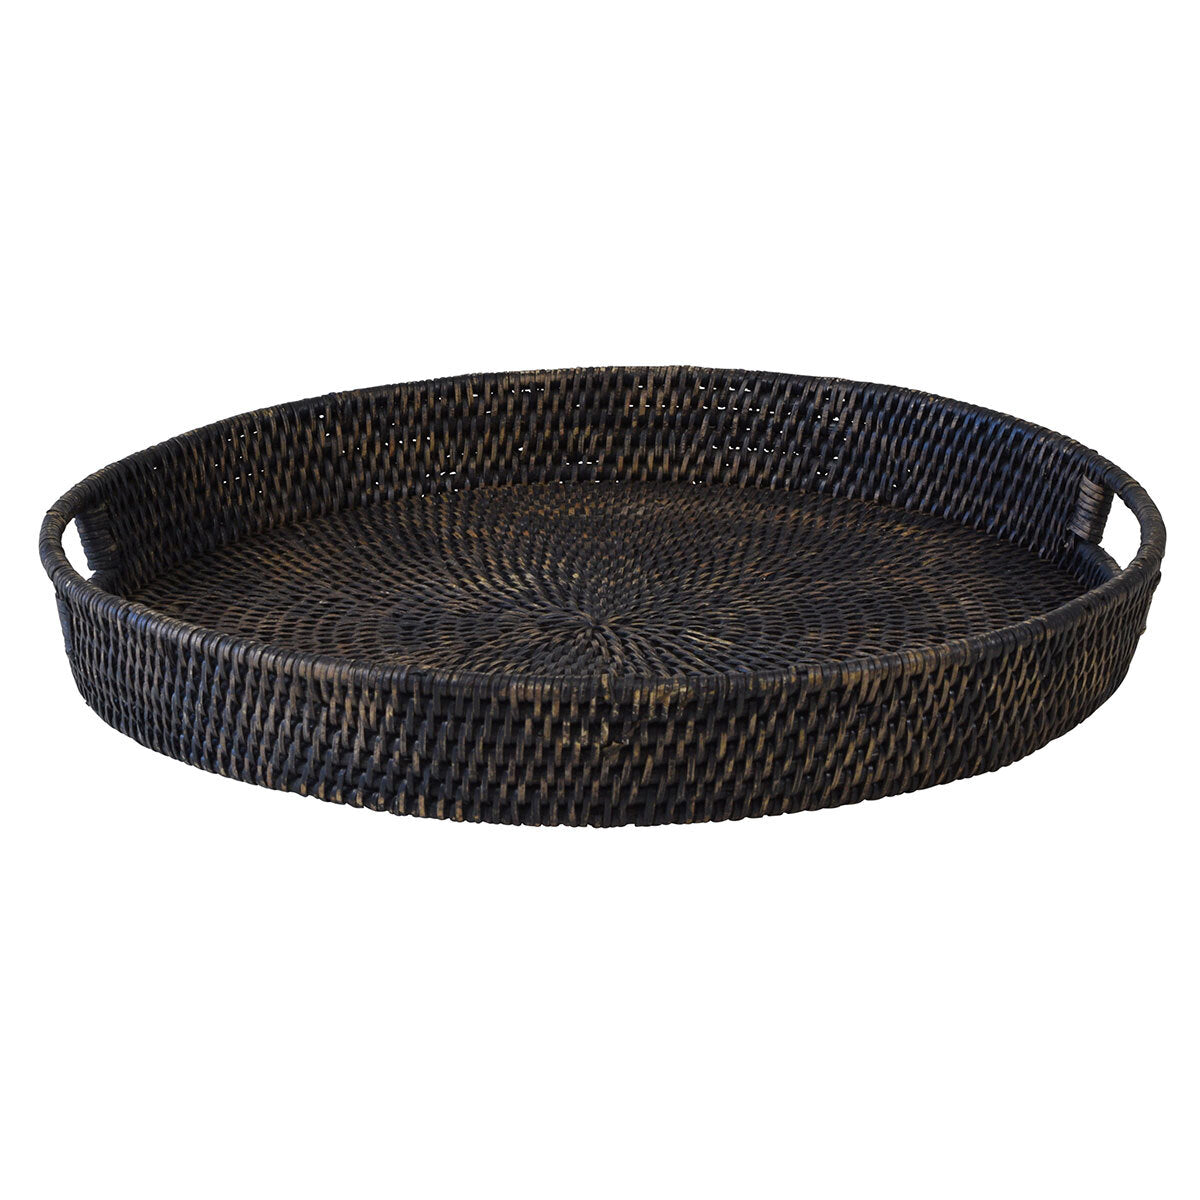 Round Dark Rattan Tray Small / Large